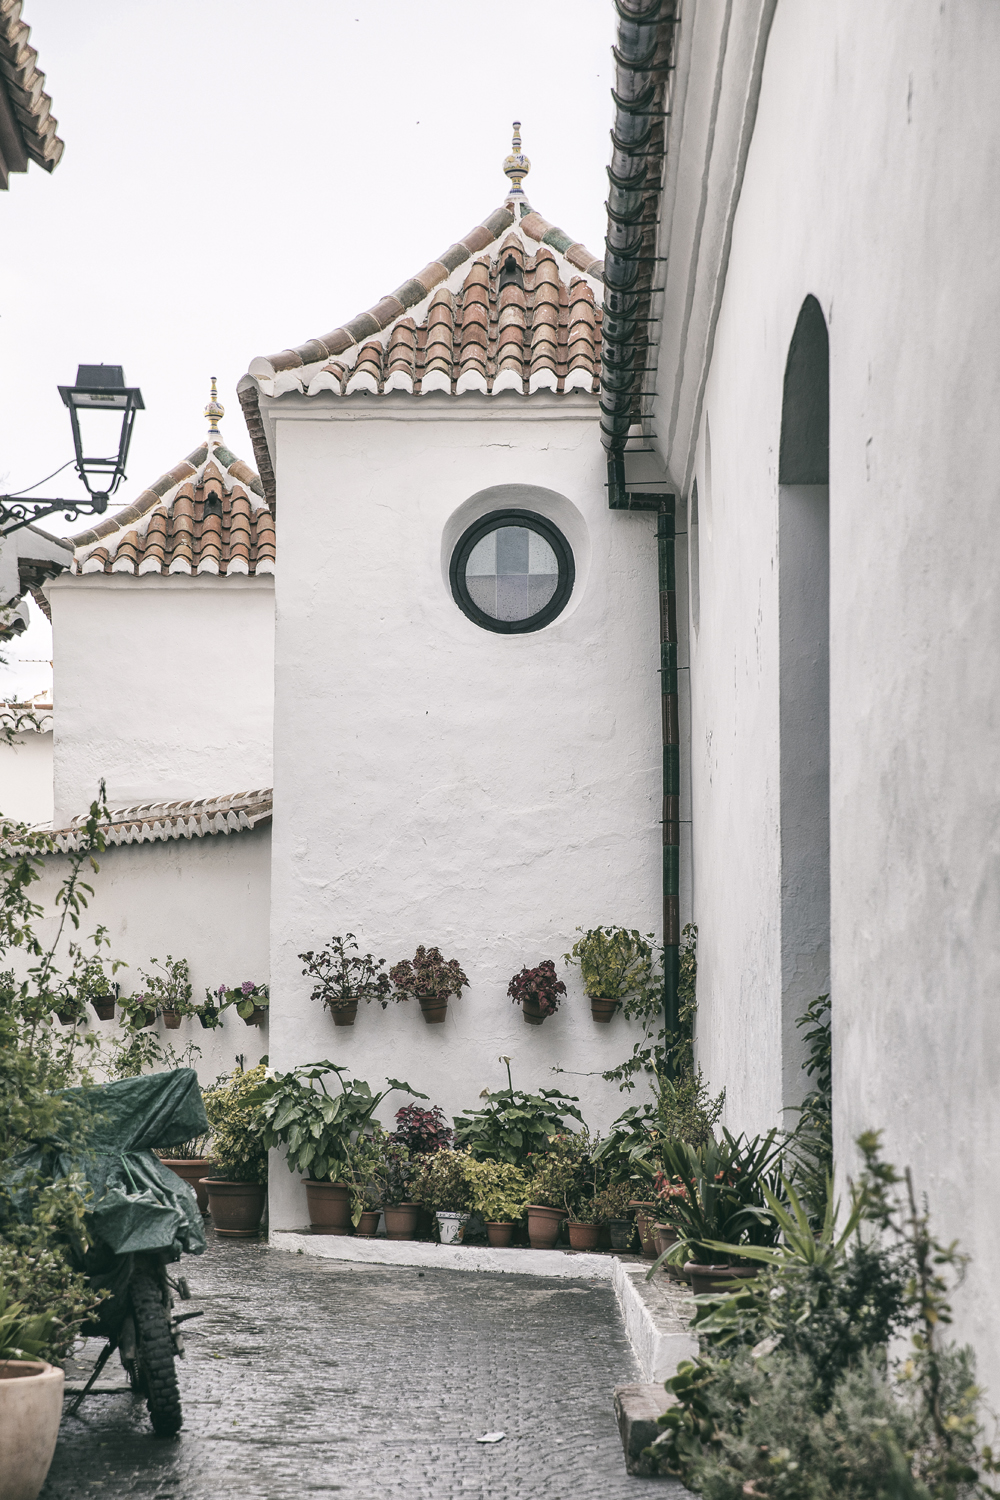 Canillas de Aceituno, Andalucia, Spain, pueblo, blanca, whitevillage, espanjan valkoiset kylät, valkoinen kylä, valokuvaaja, photographer, Frida Steiner, Visualaddict, visualaddictfrida, mountain village